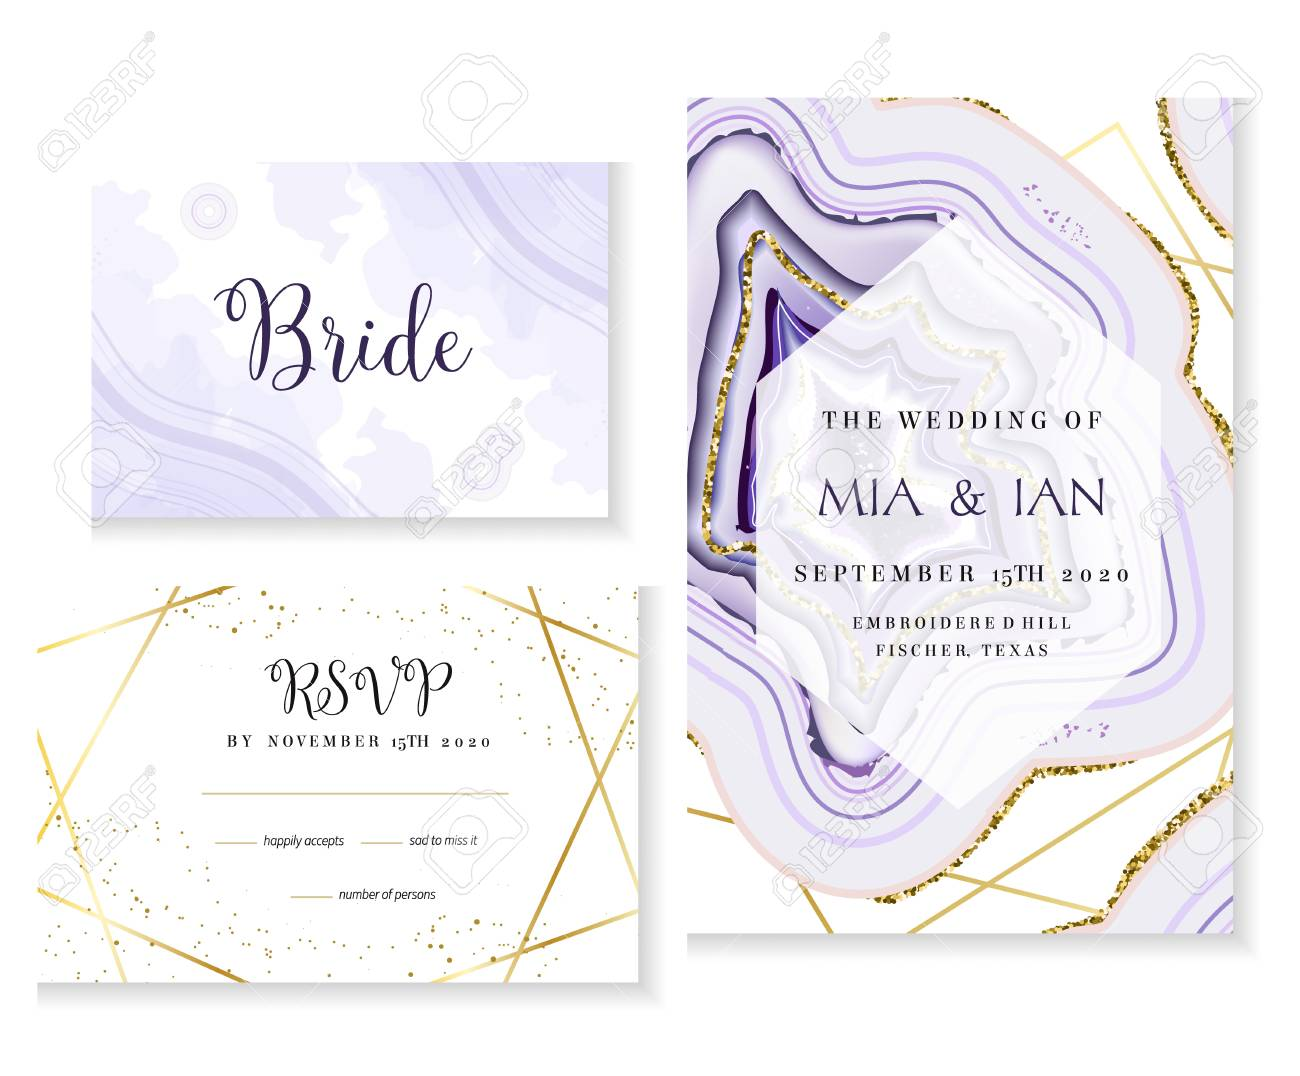 Amethyst crystal geode purple wedding vector cards. Stylish ultraviolet texture frames. Gold line art. Sparkling gems. Natural stone. Trendy glitter invitation. All elements are isolated and editable. - 117336215